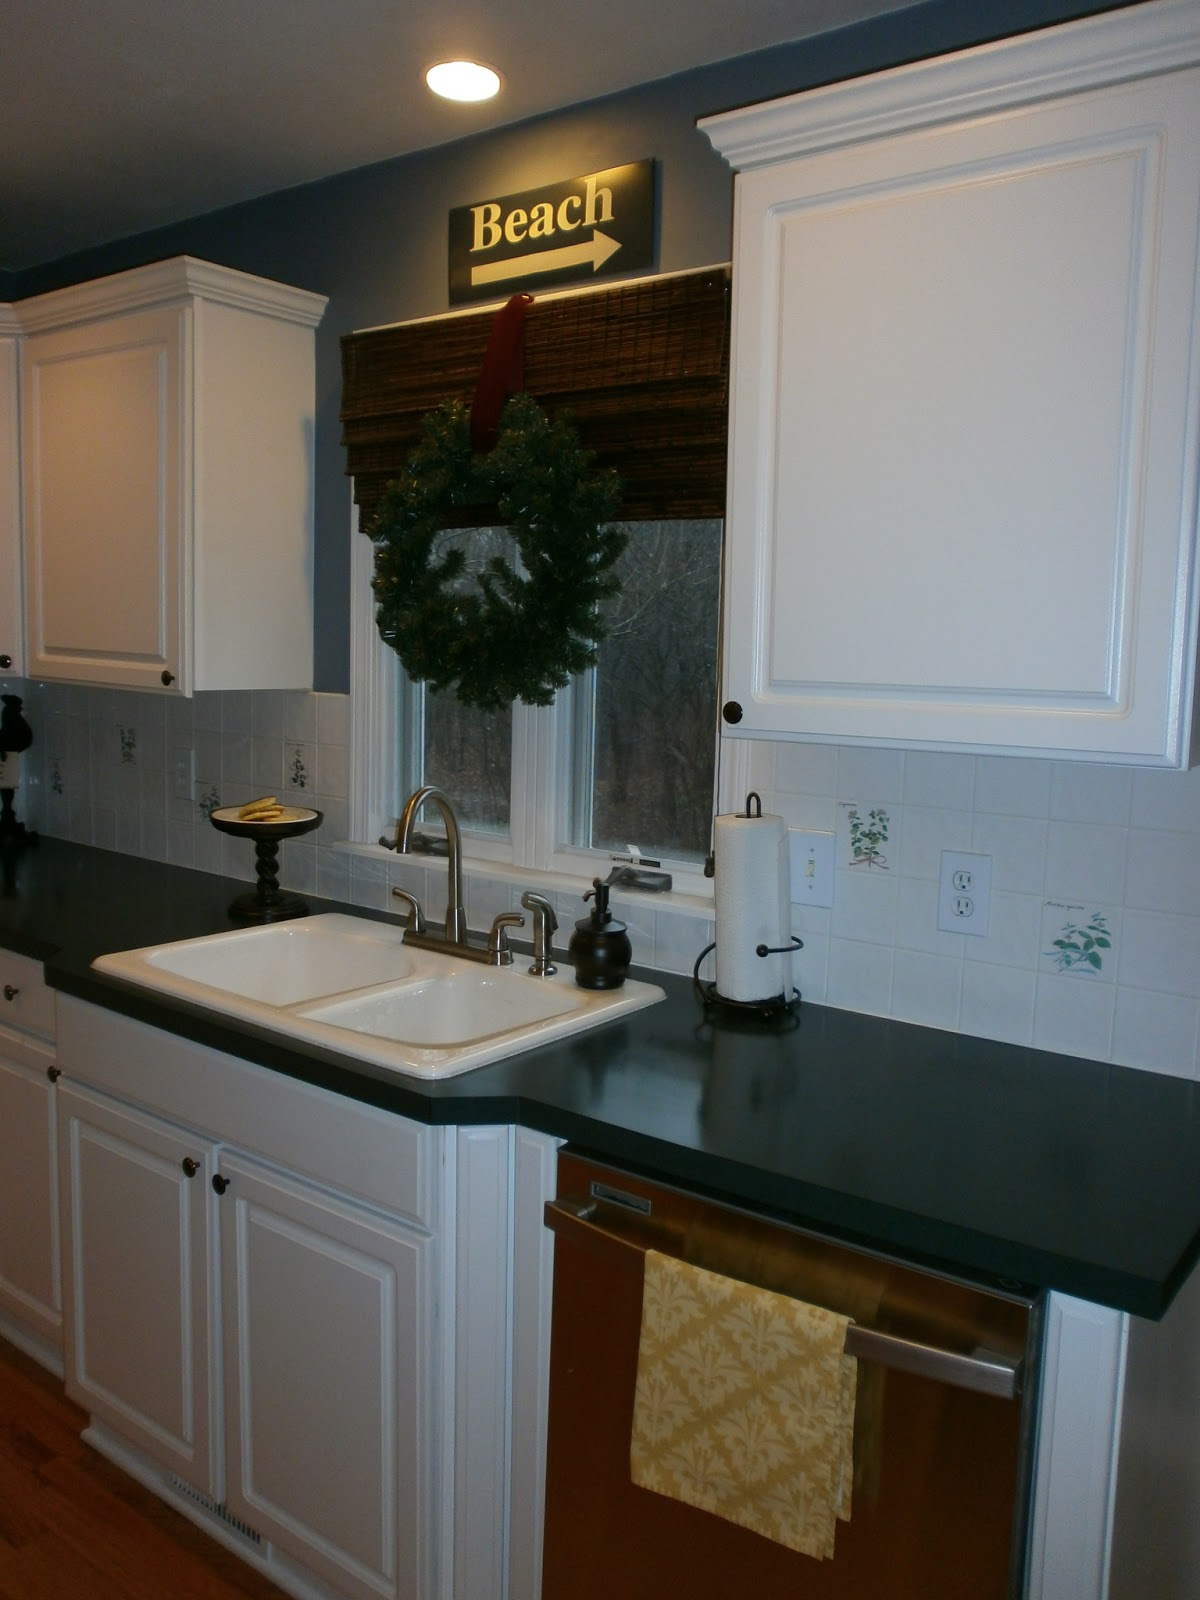 Diy painting a ceramic tile backsplash dailygadgetfo Gallery